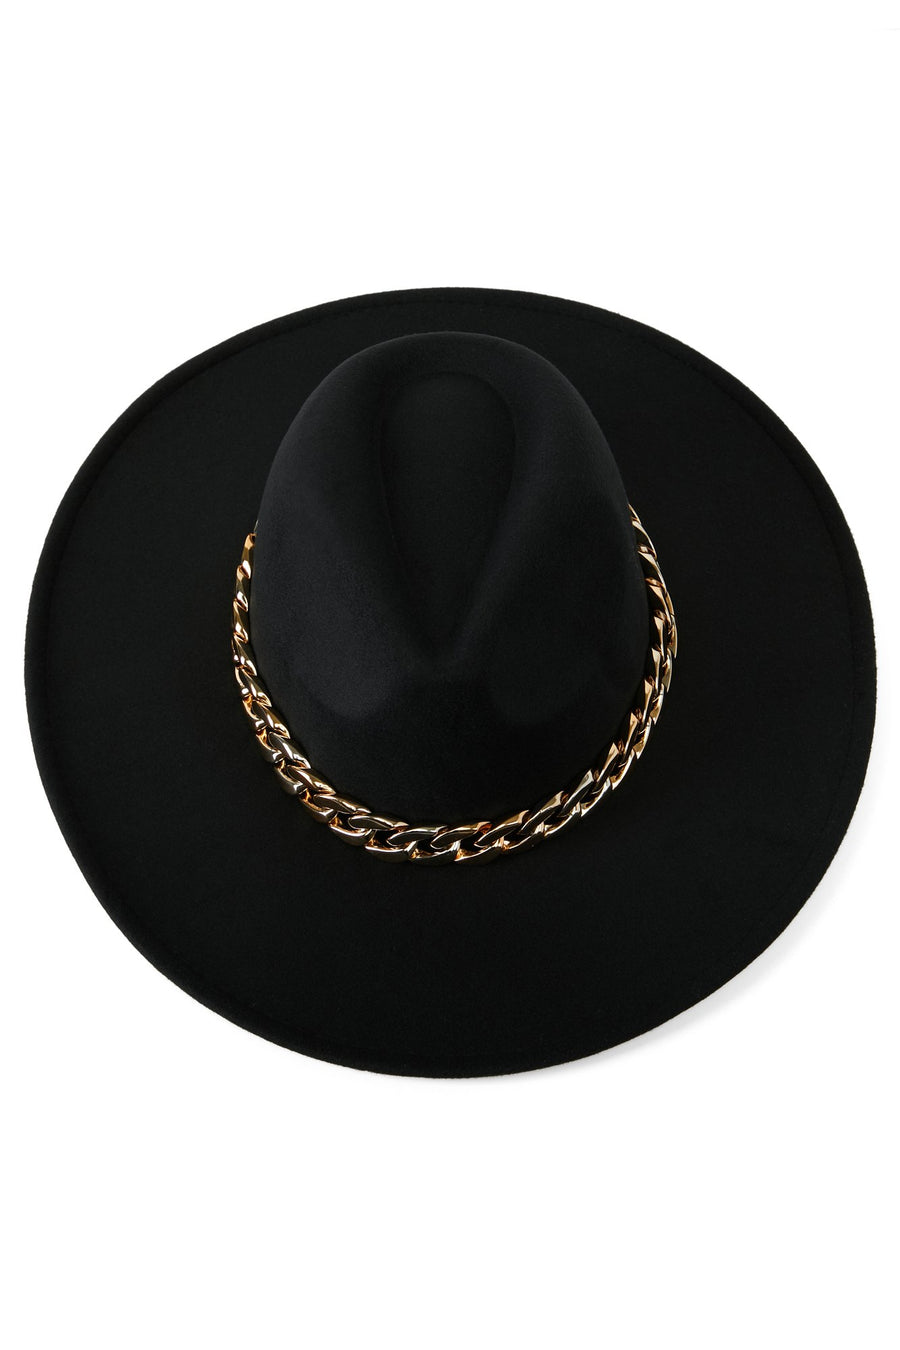 Chain Of Events Hat - Black